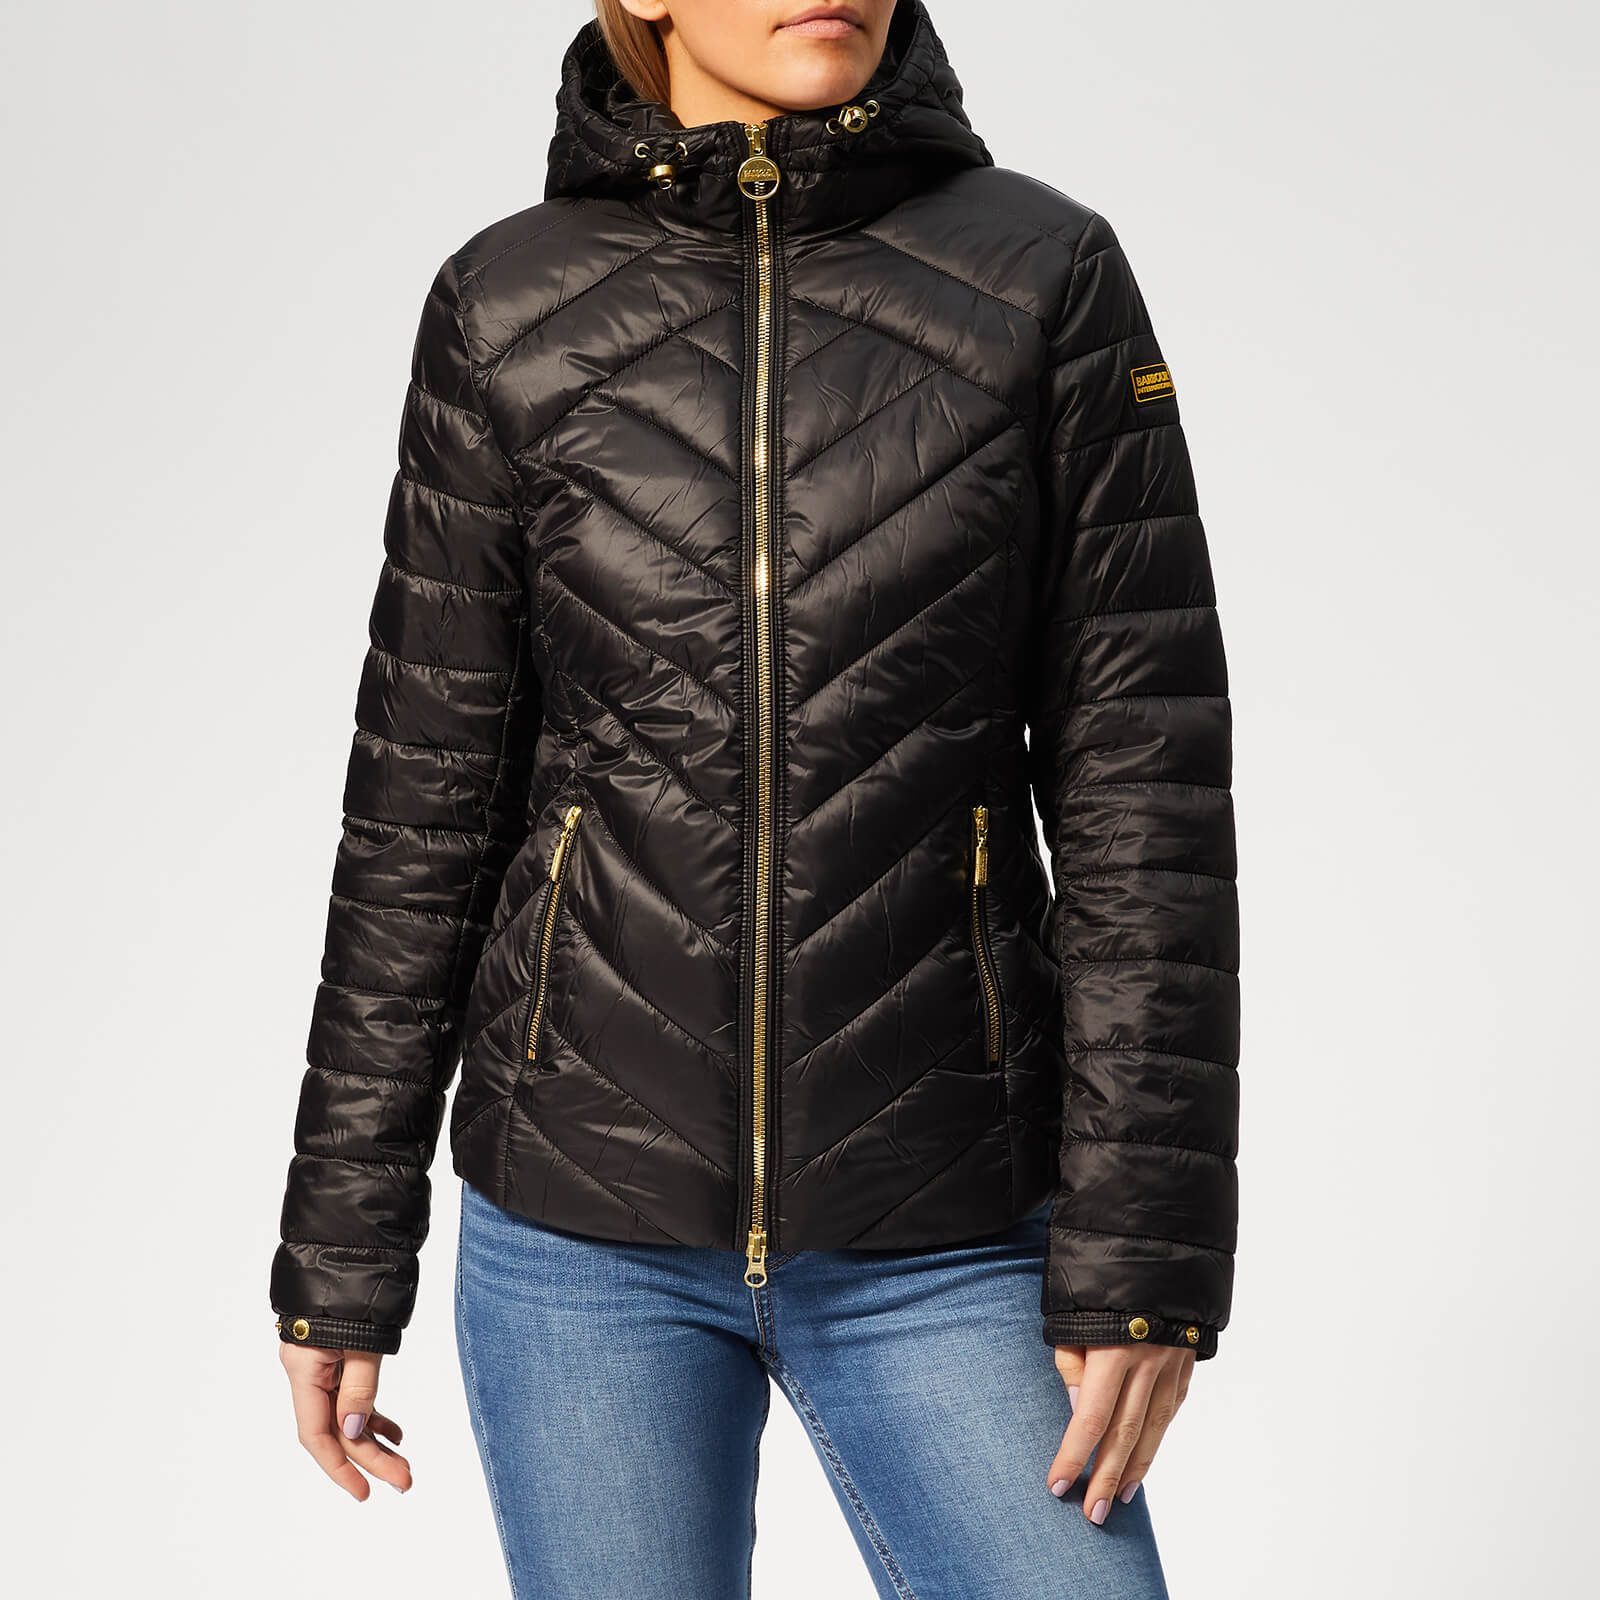 f33cd49a90e77 Barbour International Women s Durant Quilt Jacket - Black - Free UK  Delivery over £50